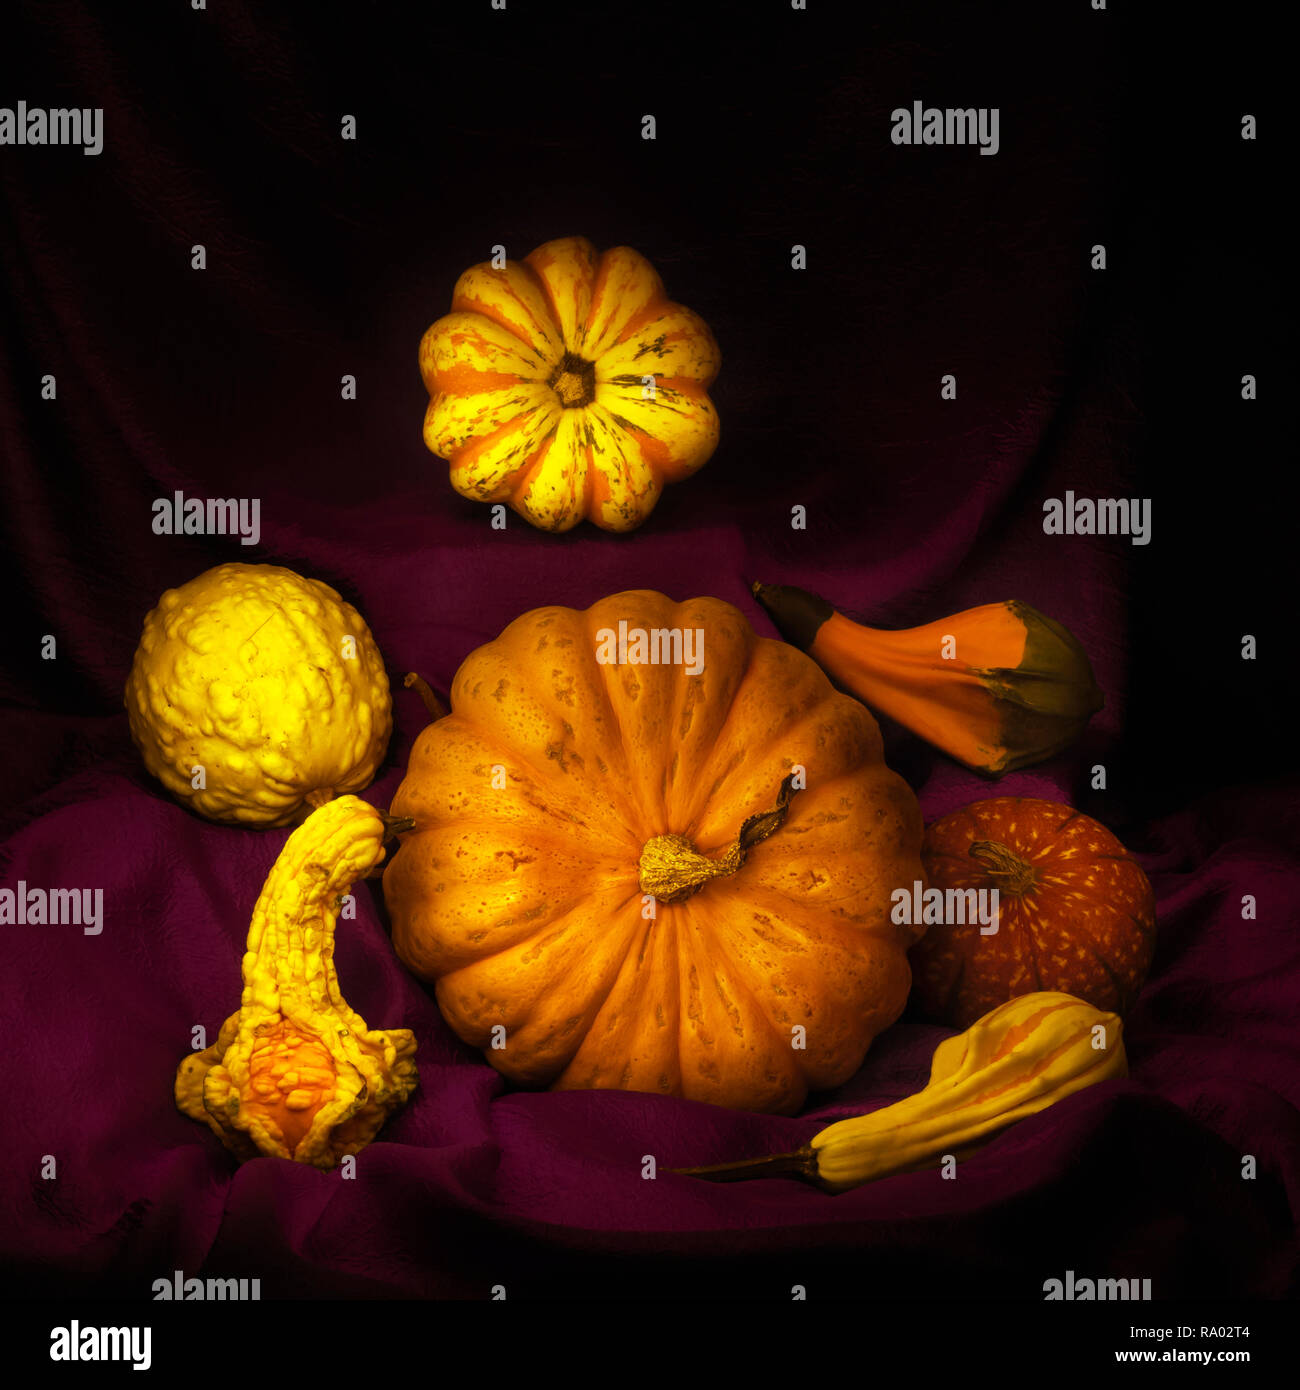 An arrangement of edible and ornamental winter squashes, pumpkins, on draped dark red fabric. Light painting still life. - Stock Image